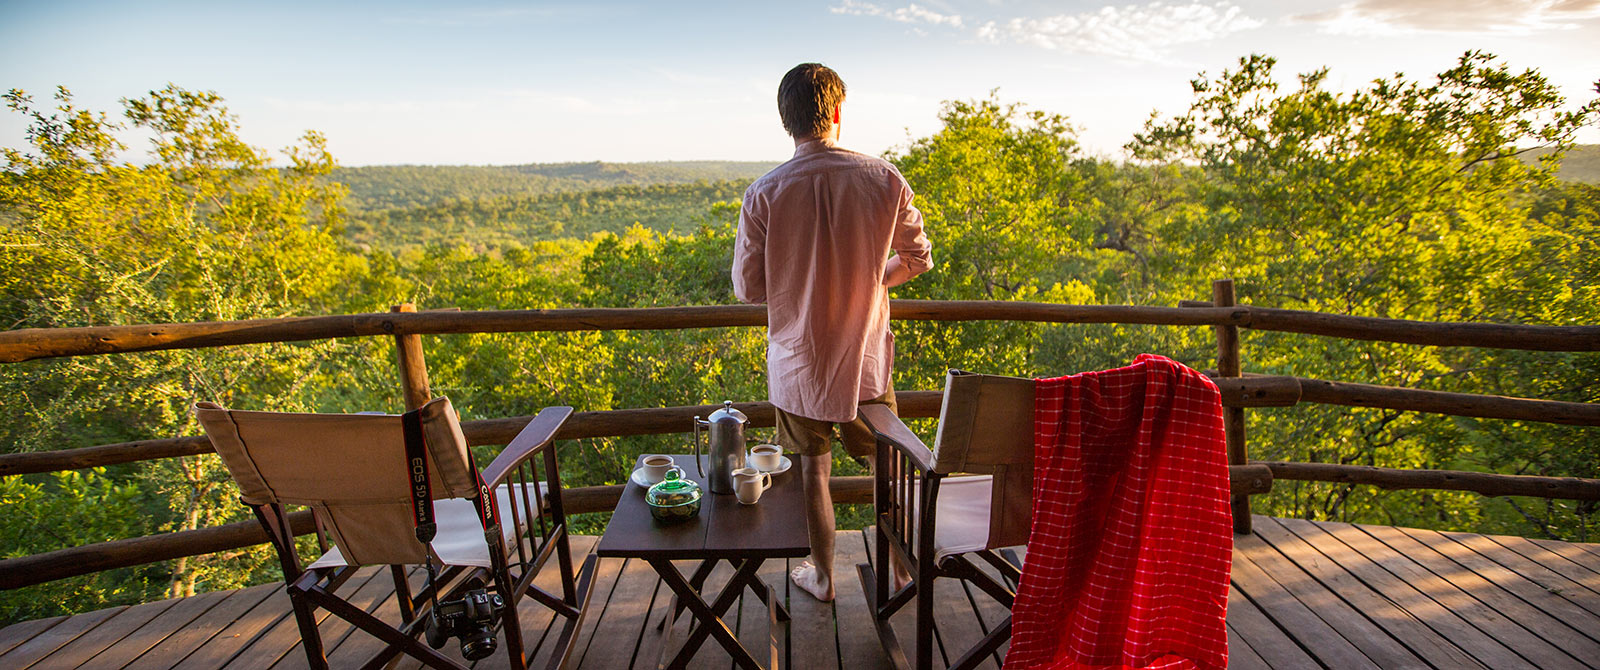 Private Balcony at Treetops Lodge, Tarangire National Park, Tanzania